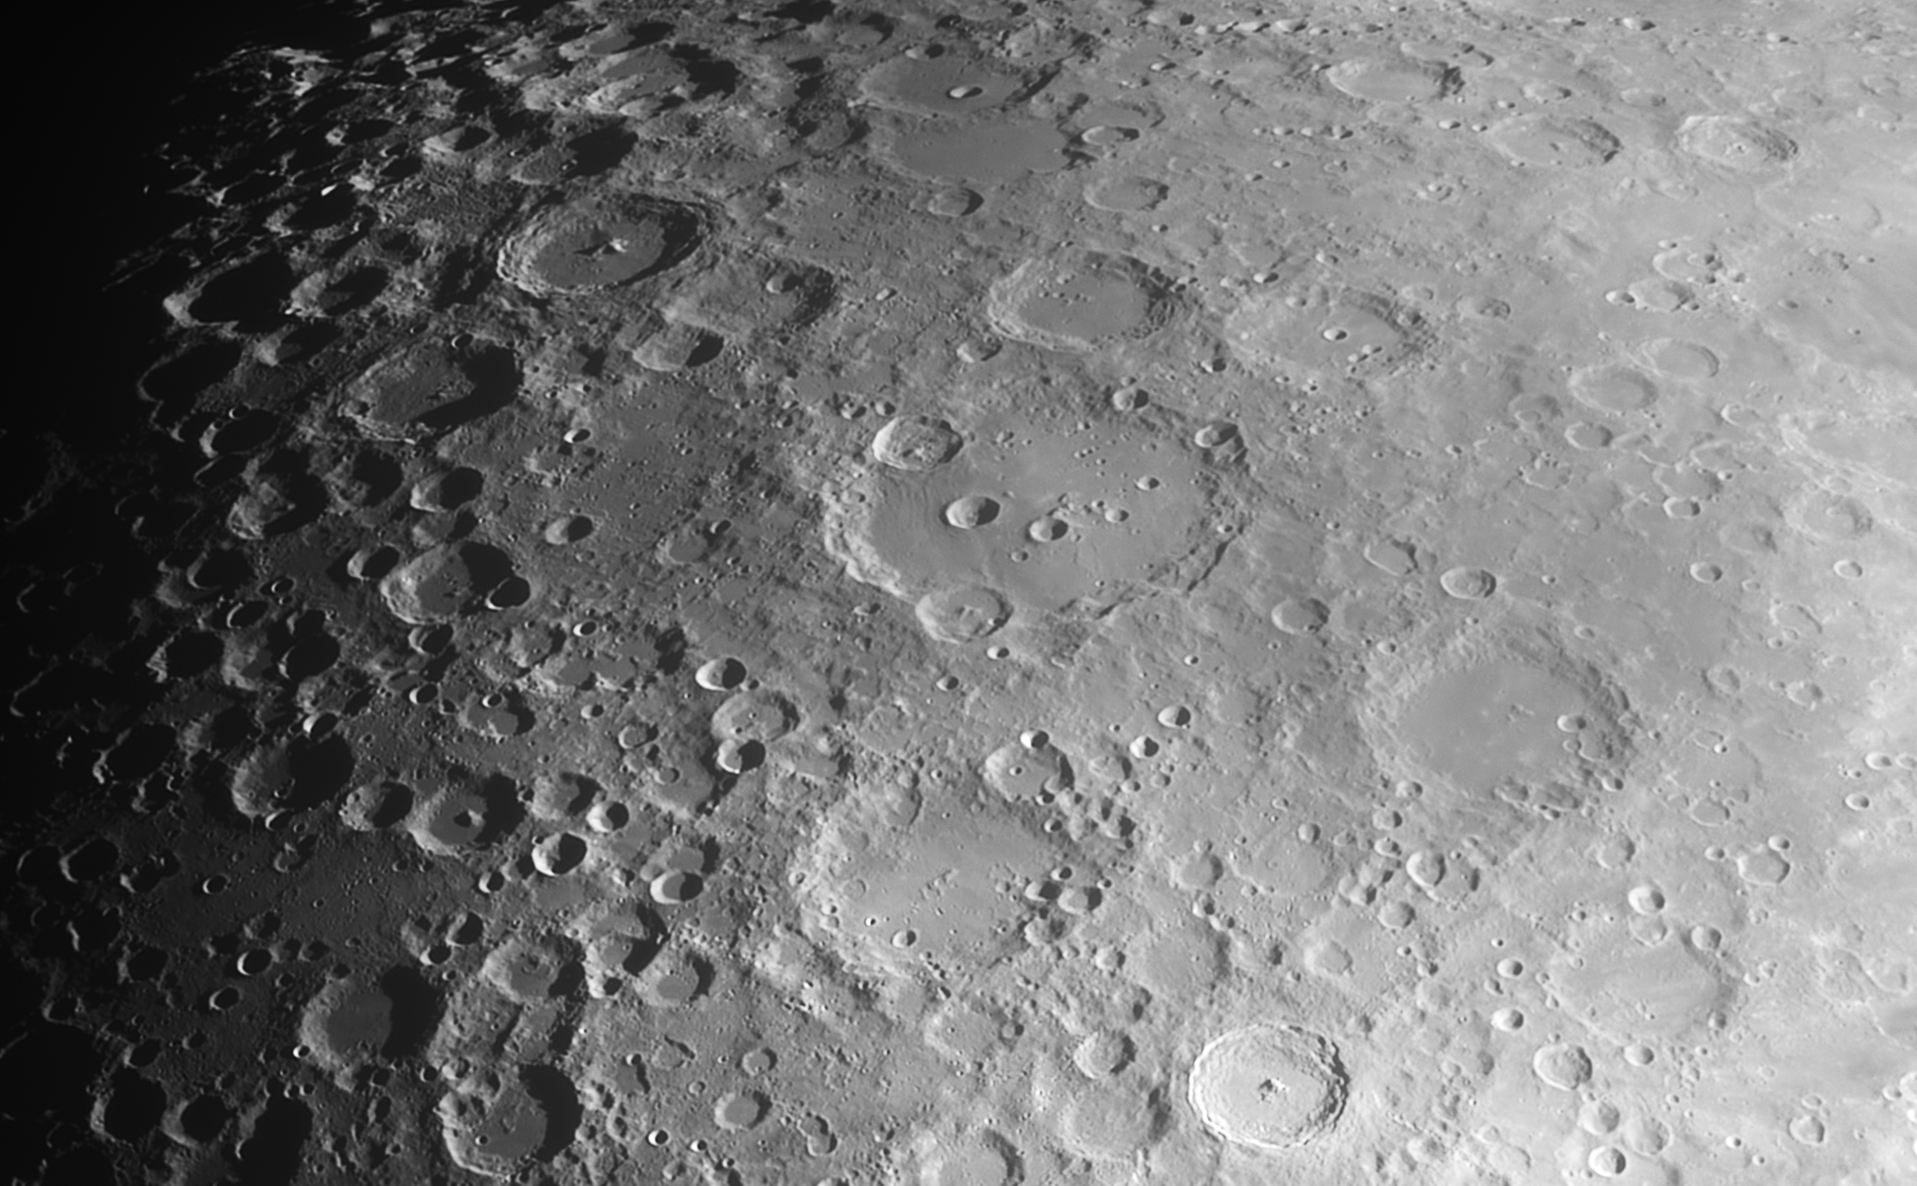 clavius_g21557__2020-01-16_T_05-02-24-0688_L_lapl2_ap10411.png.f80a12f46c3624f8b93c6af670a31e5f.png